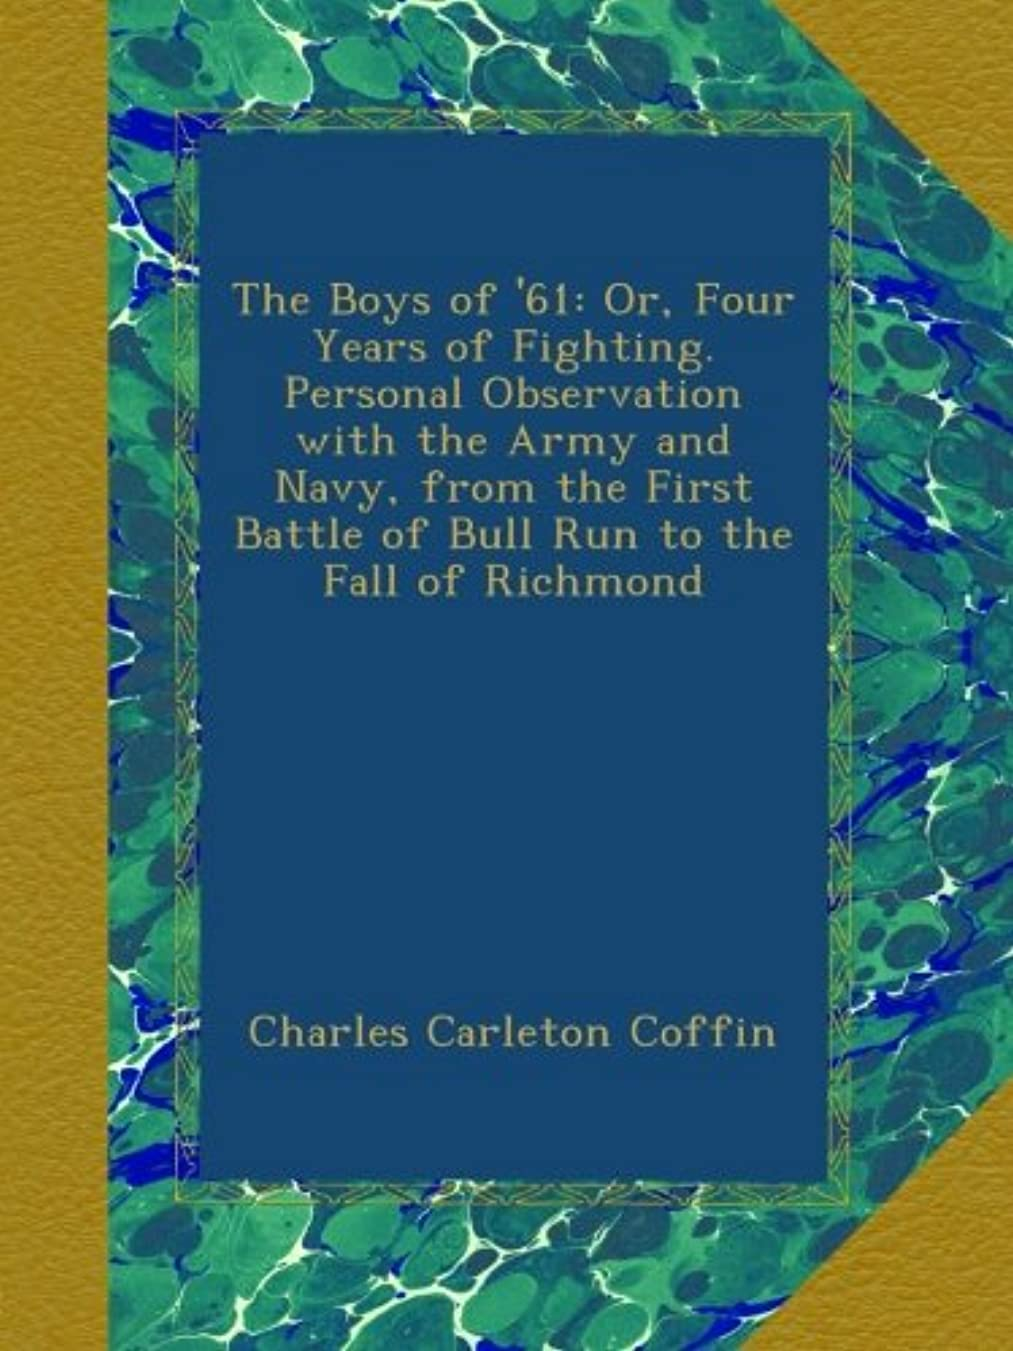 フェザーまとめるフラップThe Boys of '61: Or, Four Years of Fighting. Personal Observation with the Army and Navy, from the First Battle of Bull Run to the Fall of Richmond